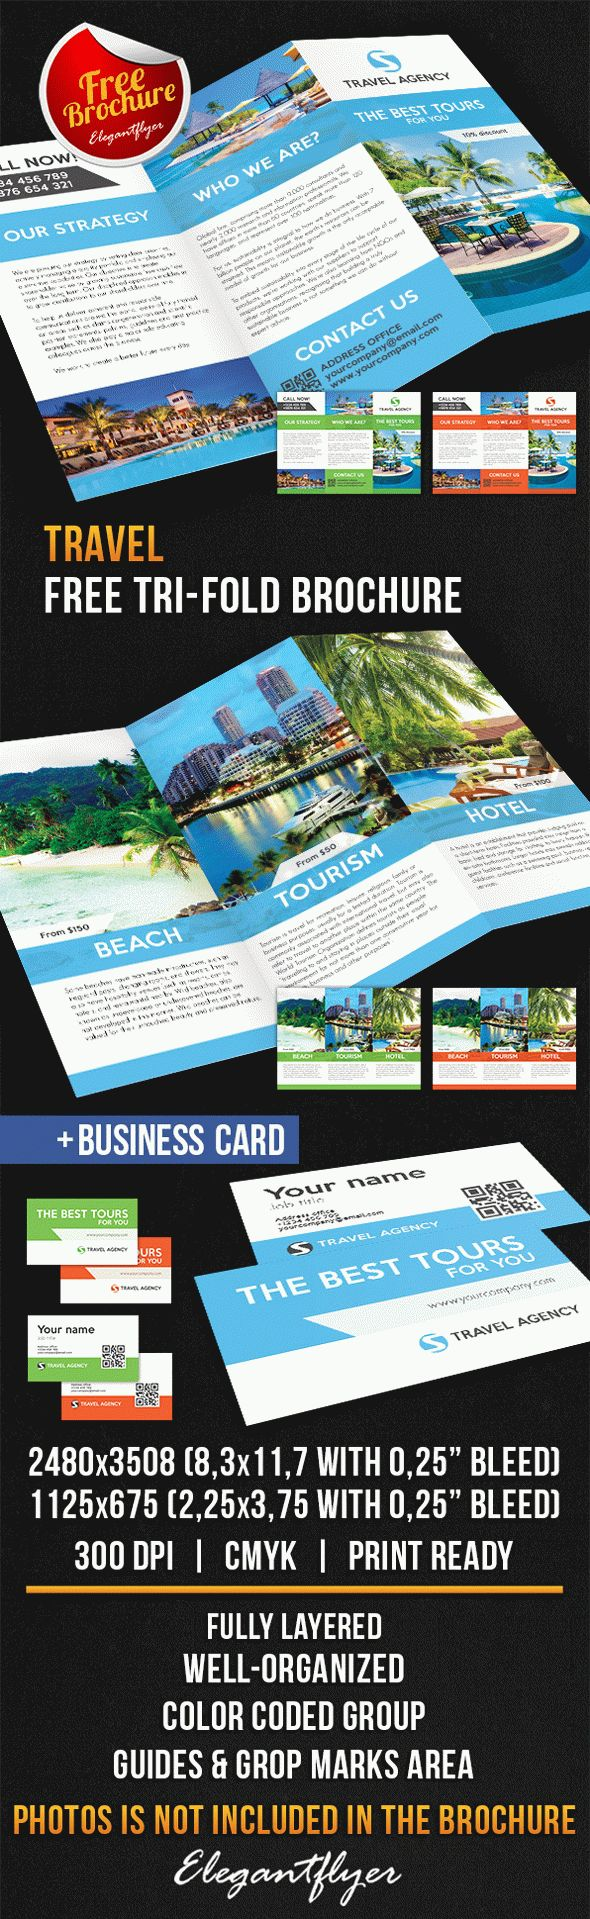 Travel tri fold brochure free psd template by elegantflyer for Tri fold brochure template psd